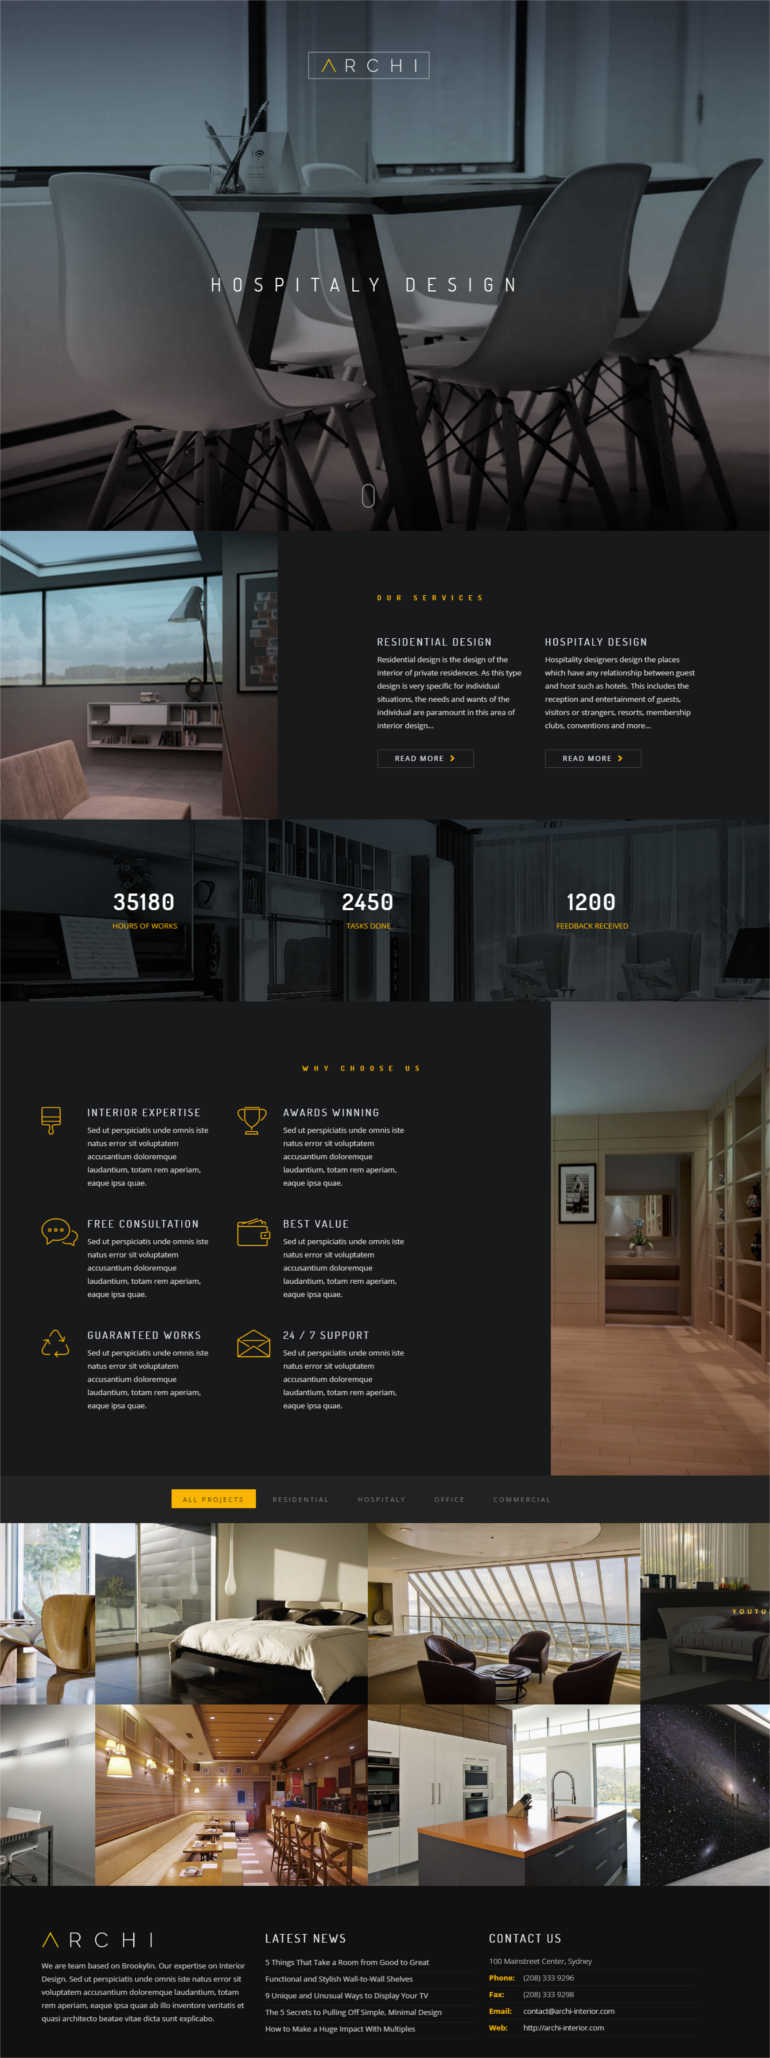 archi-interior-design-website-template-full-demo-page-of-theme